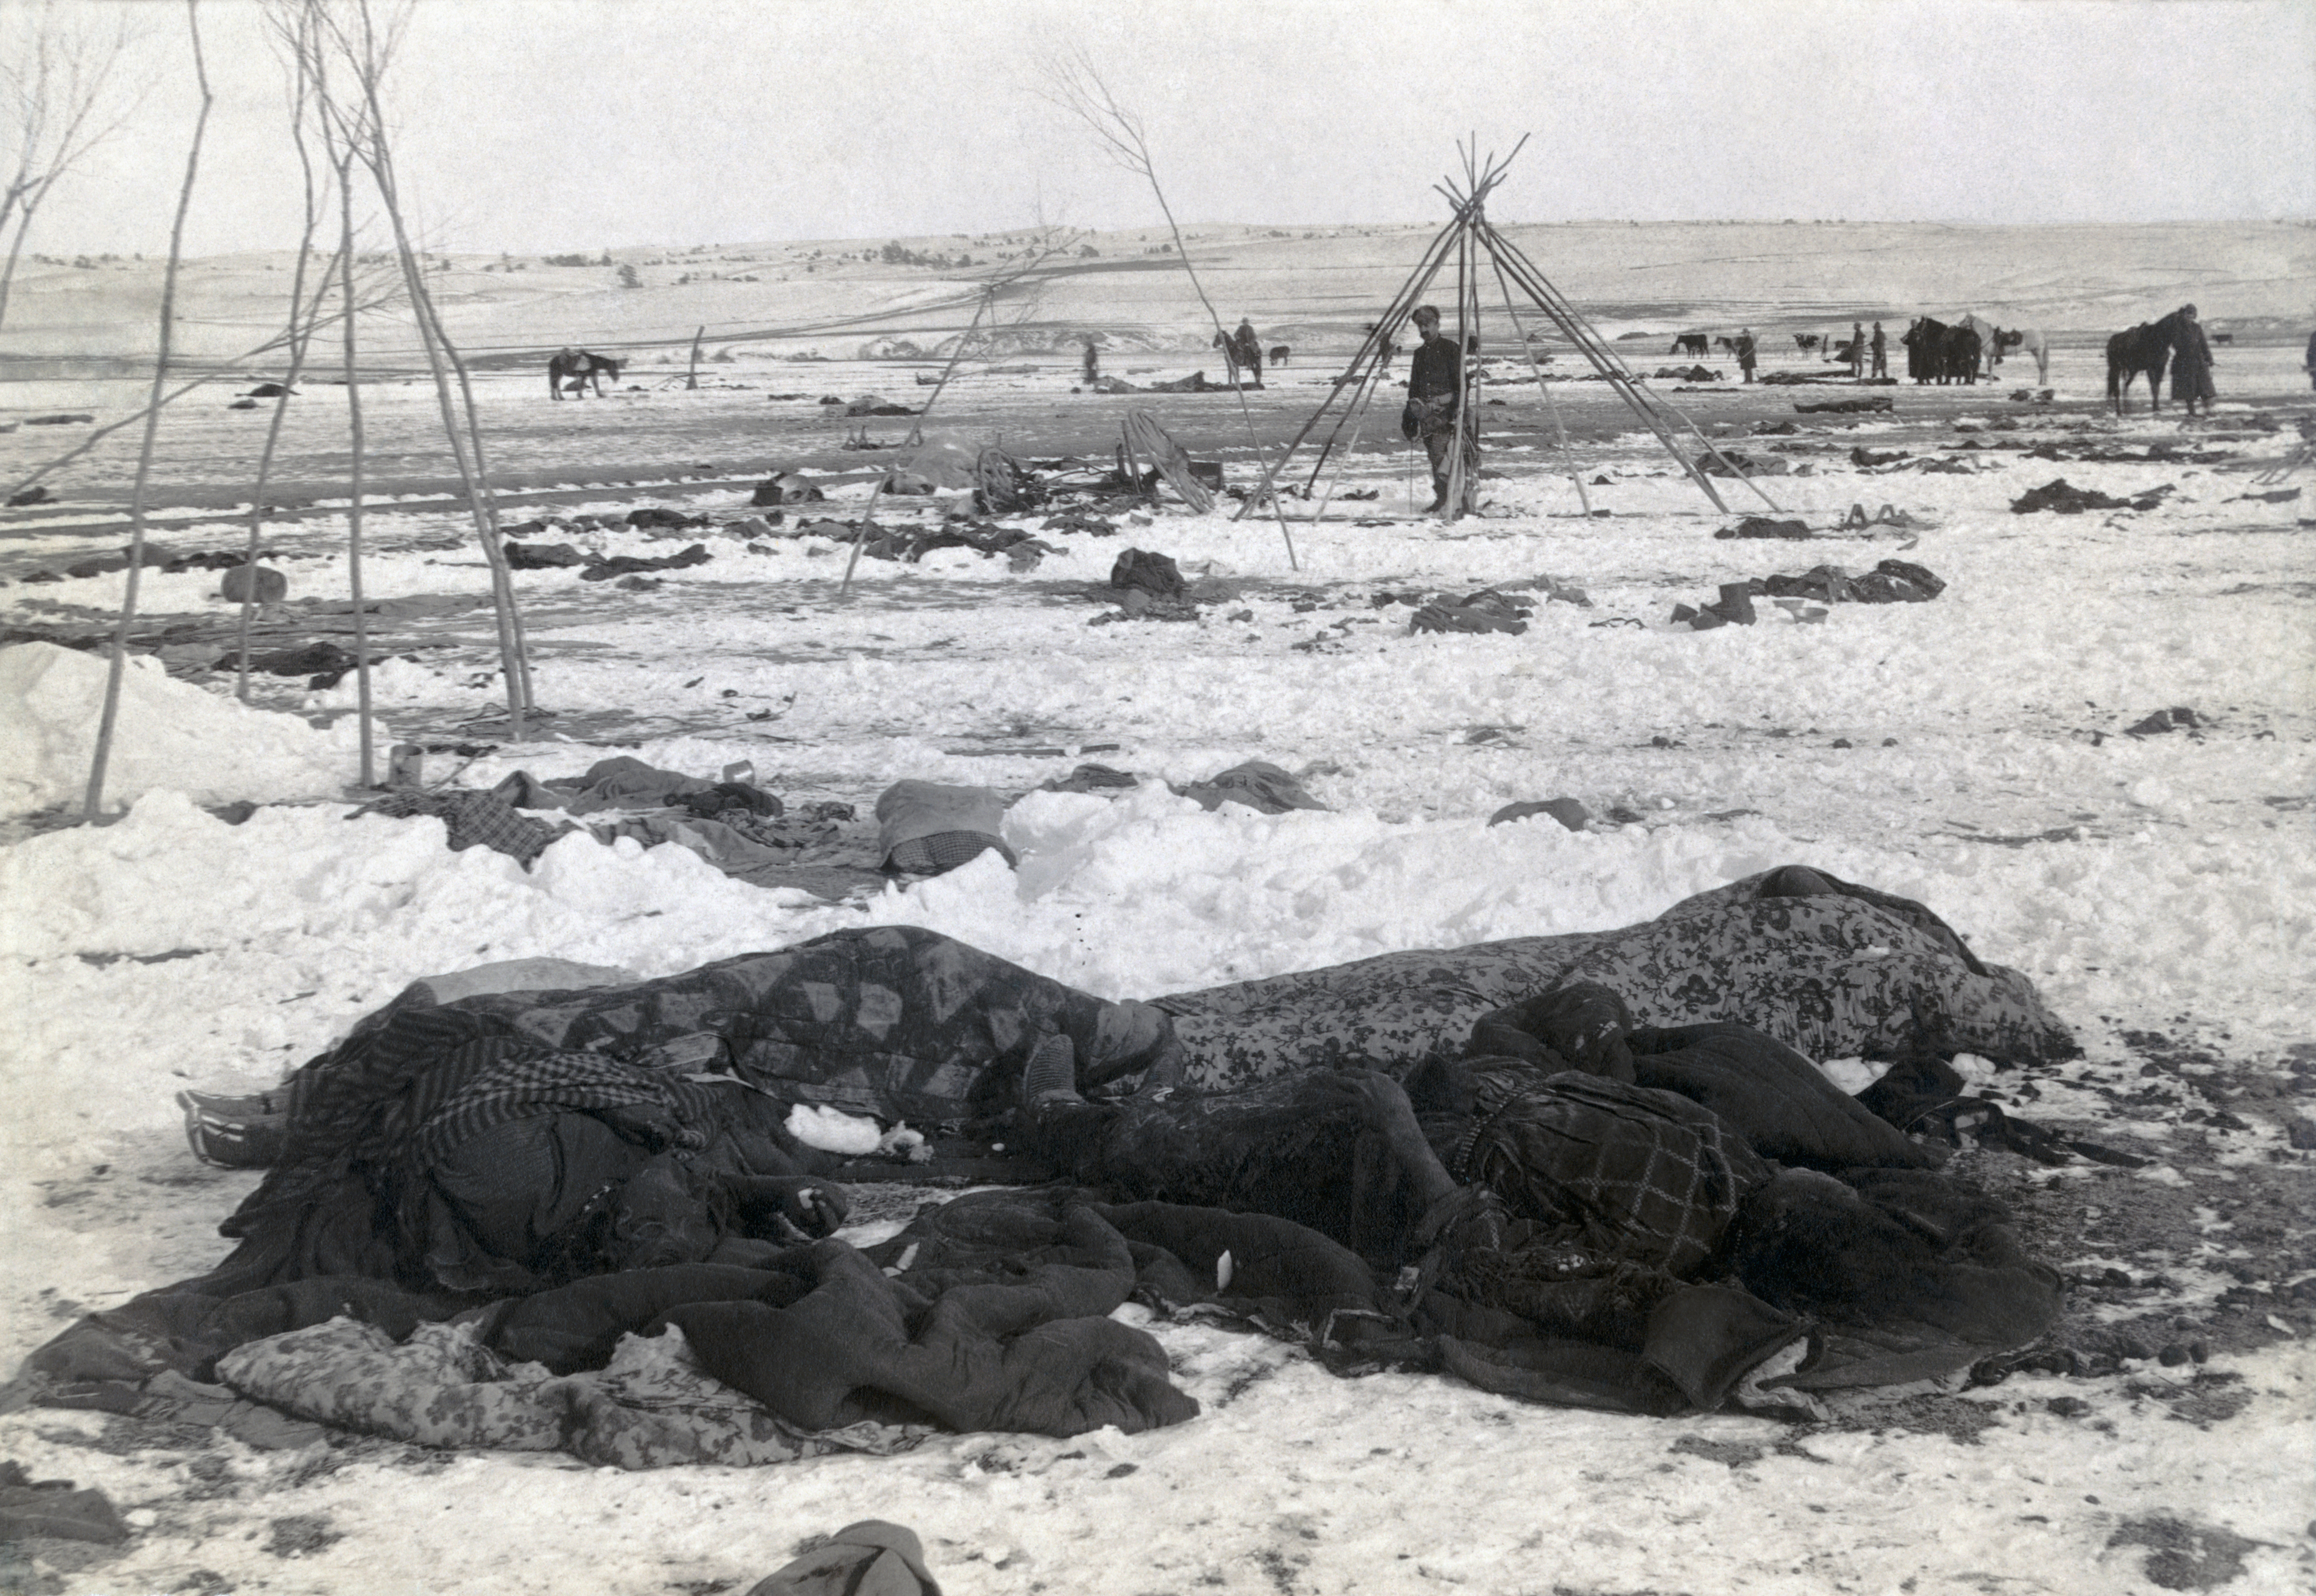 Wounded Knee aftermath.